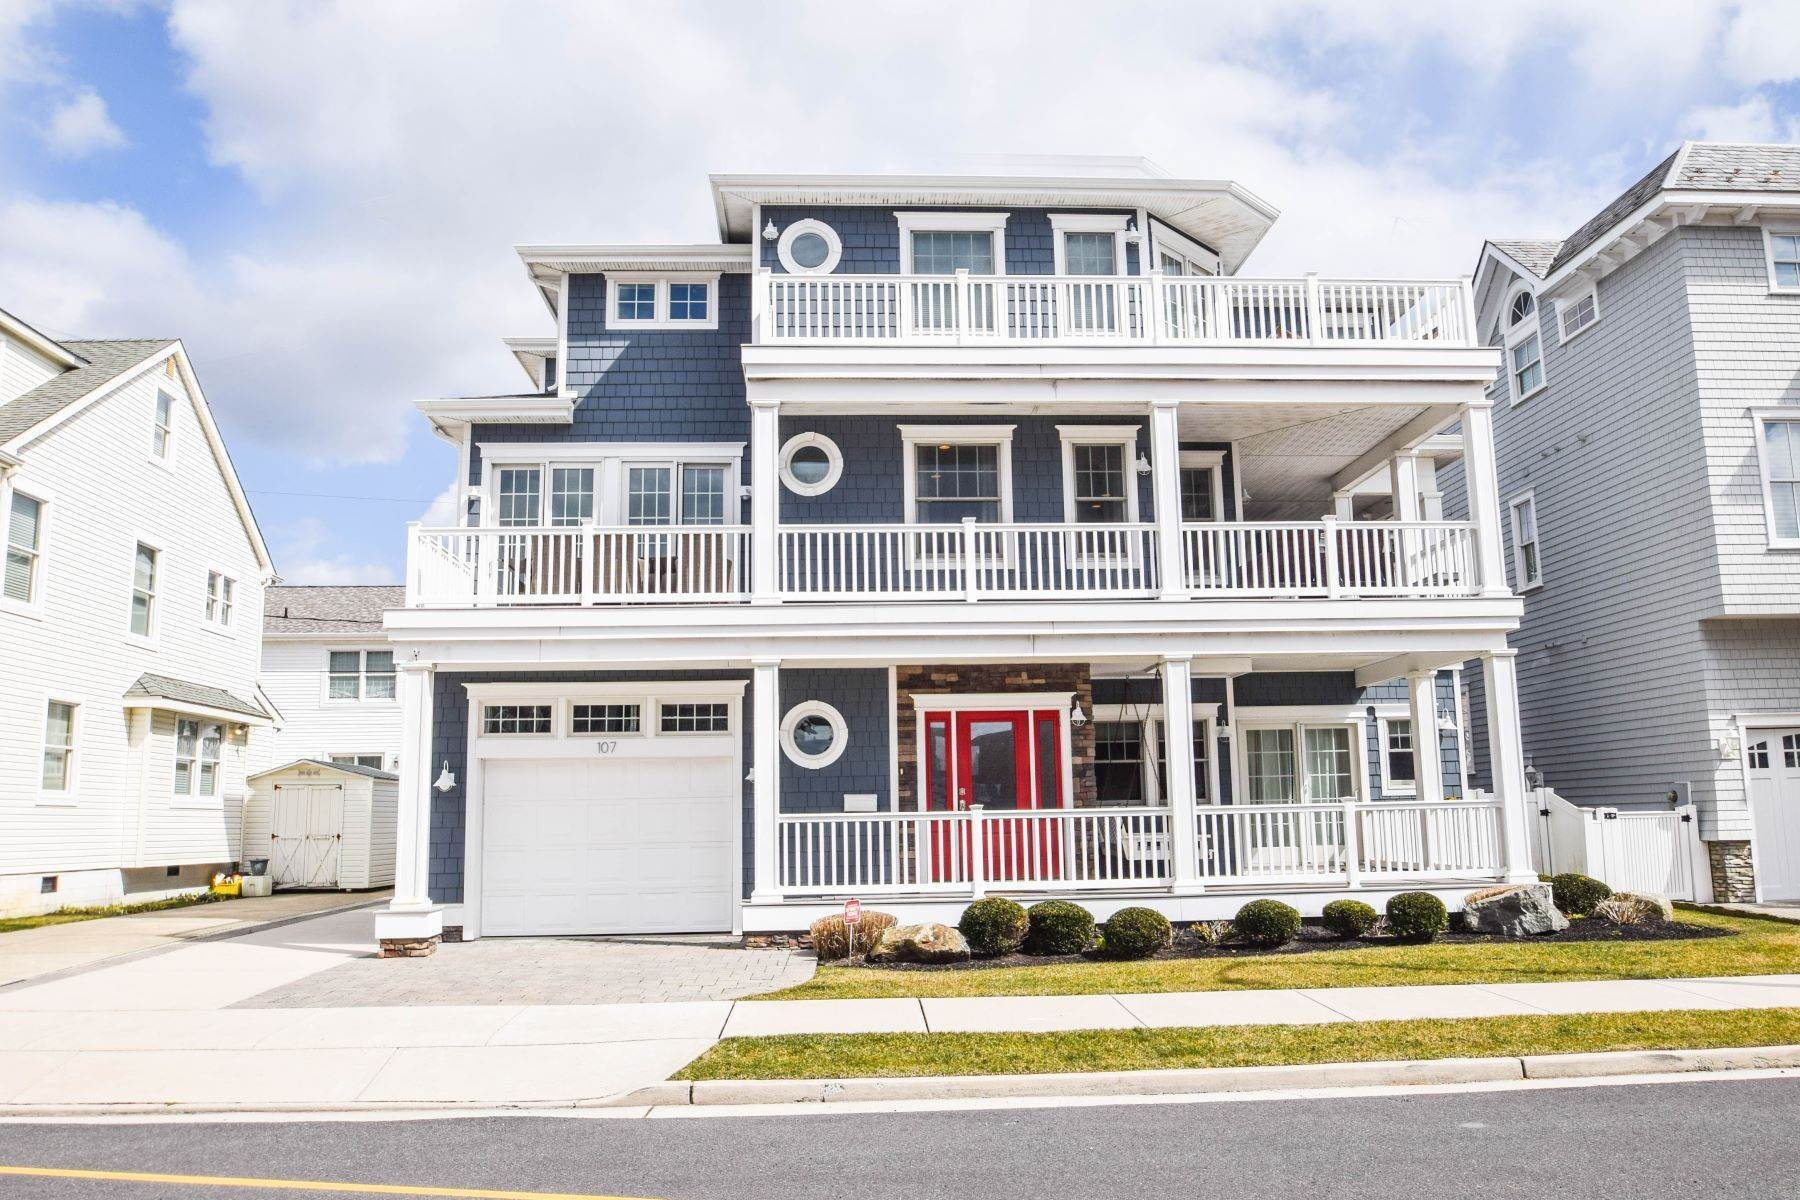 Single Family Homes lúc 107 S Philadelphia Avenue, Split Season 1st Half, Ventnor, New Jersey 08406 Hoa Kỳ